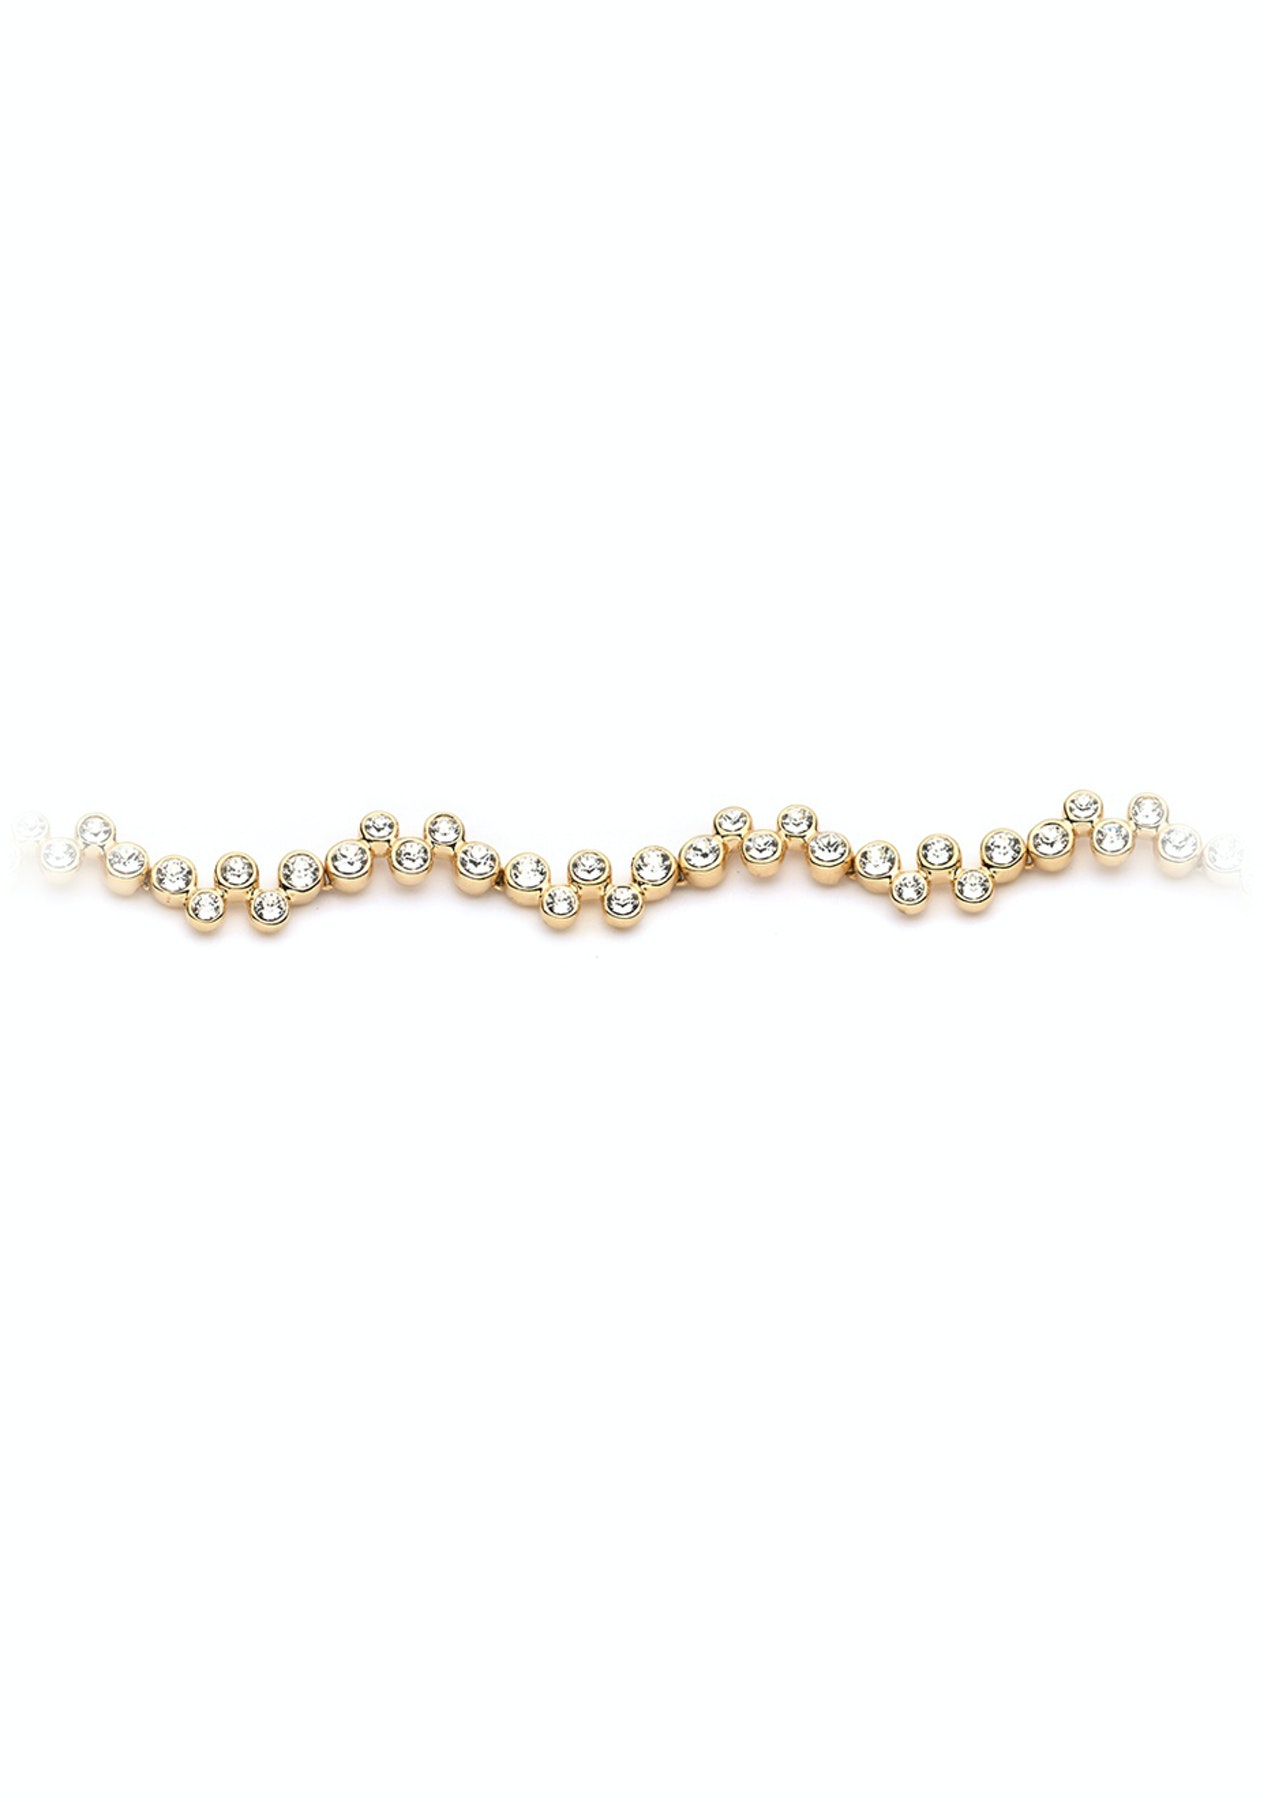 b22bb62ce7247 Myjs Fidelity Bracelet Made With Clear Swarovski Crystals 16K Gold Plated